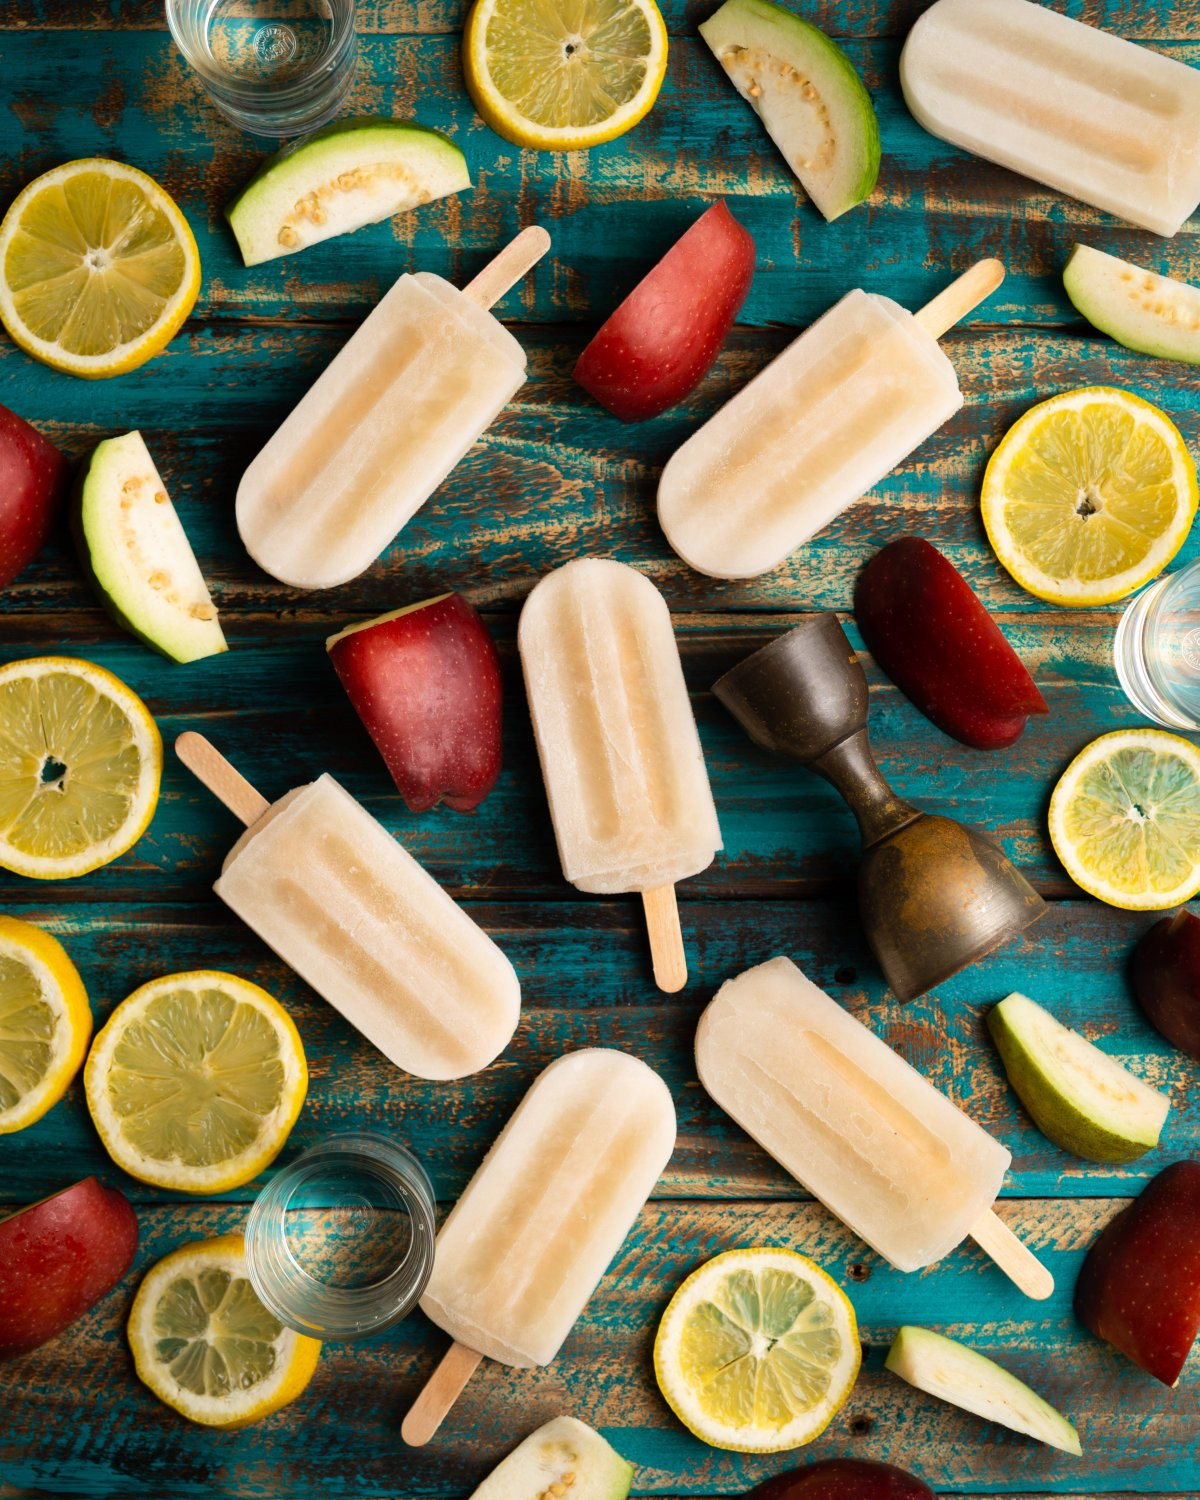 Icy Cold Gin Infused Popsicles Anyone?